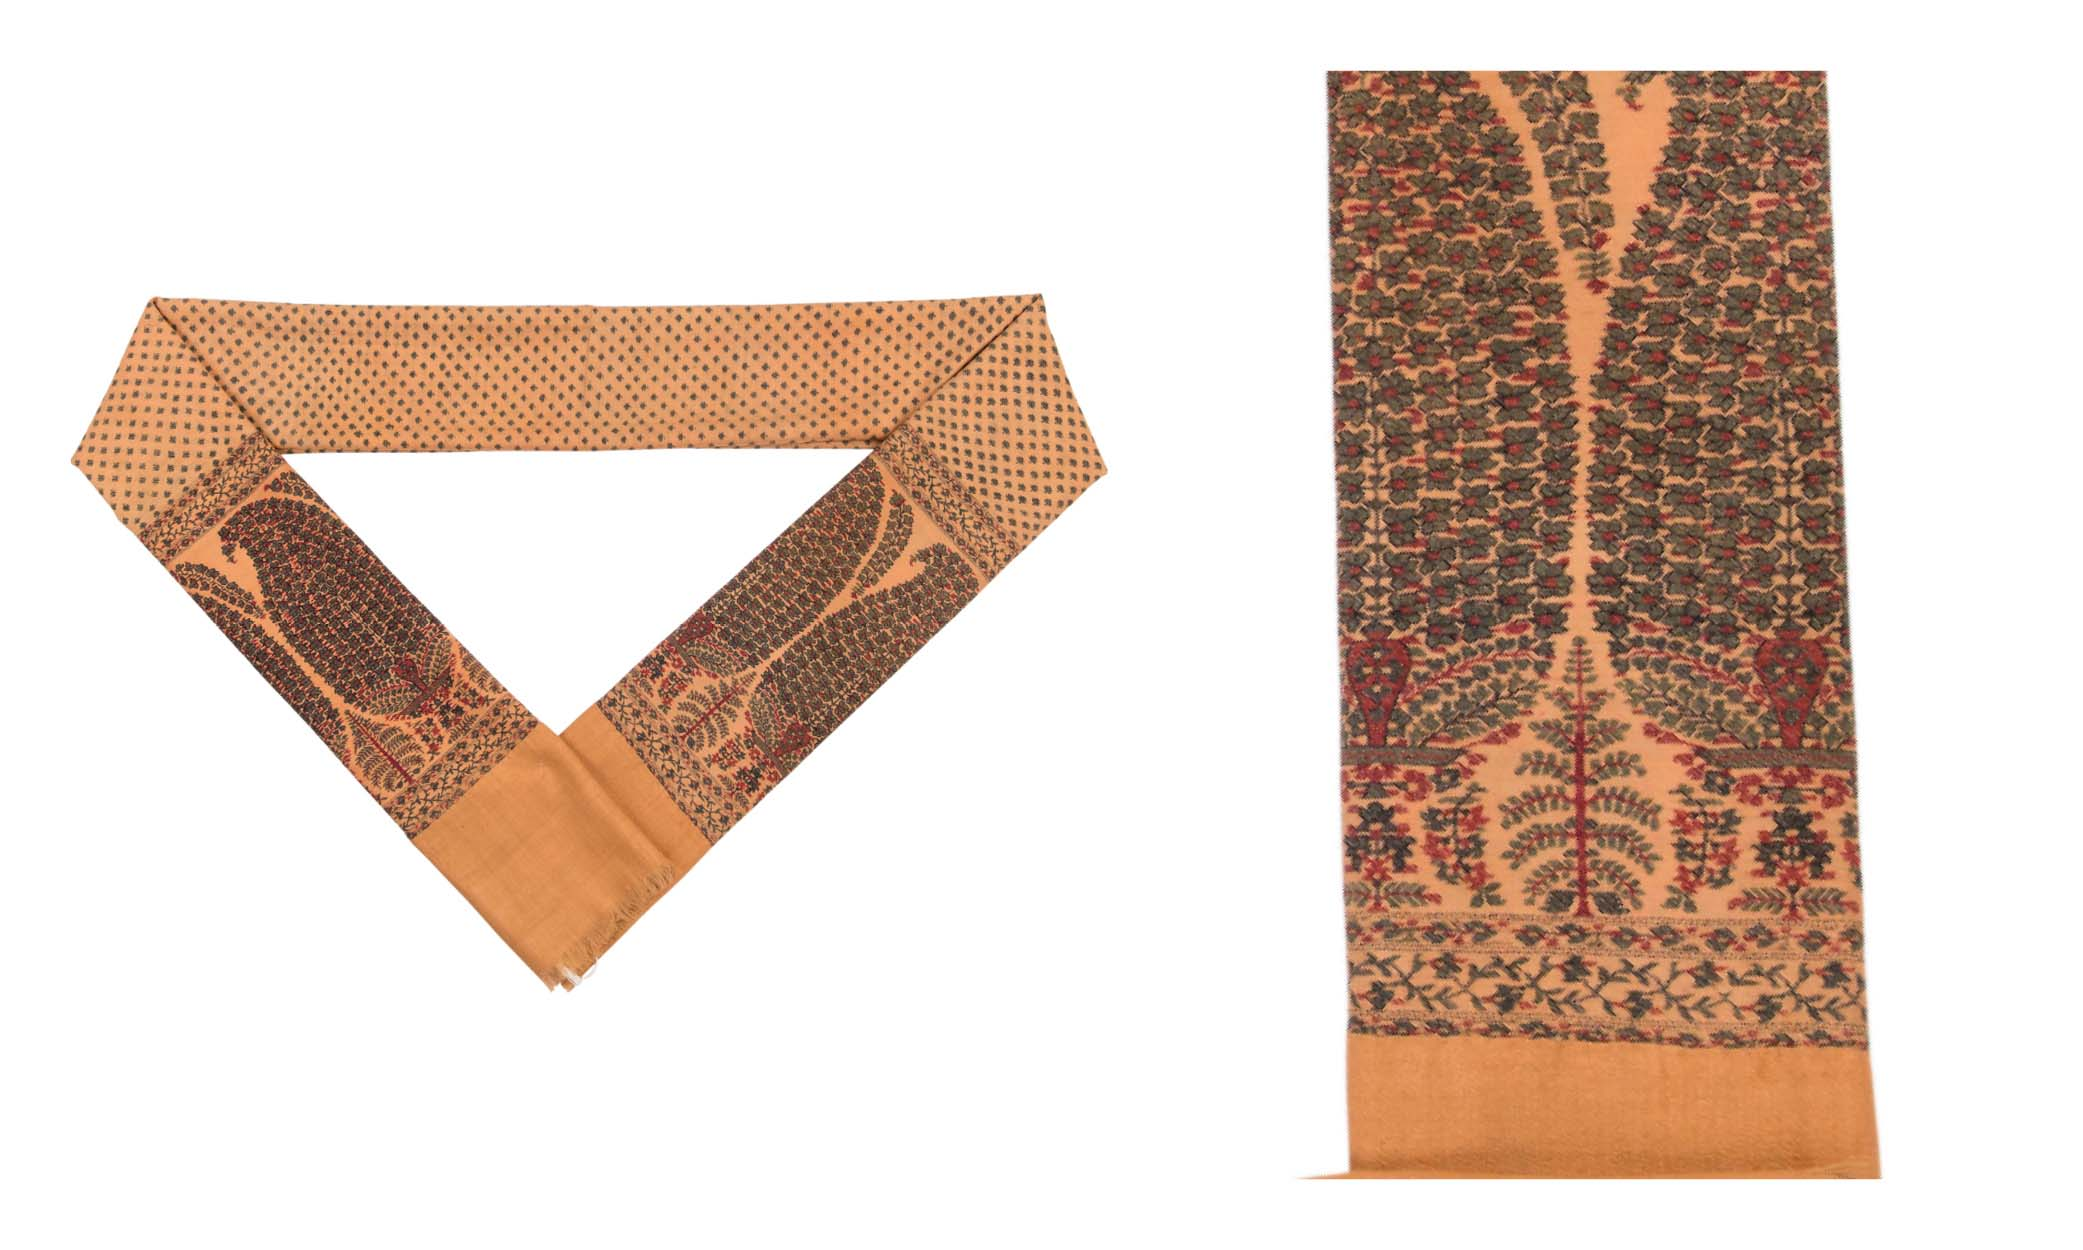 Lot 68: A LONG SHAWL FRAGMENT (DOCHALLA). NORTH INDIA, CIRCA 1810. Estimate: GBP 3,000 - GBP 4,000. Price Realised: GBP 3,750